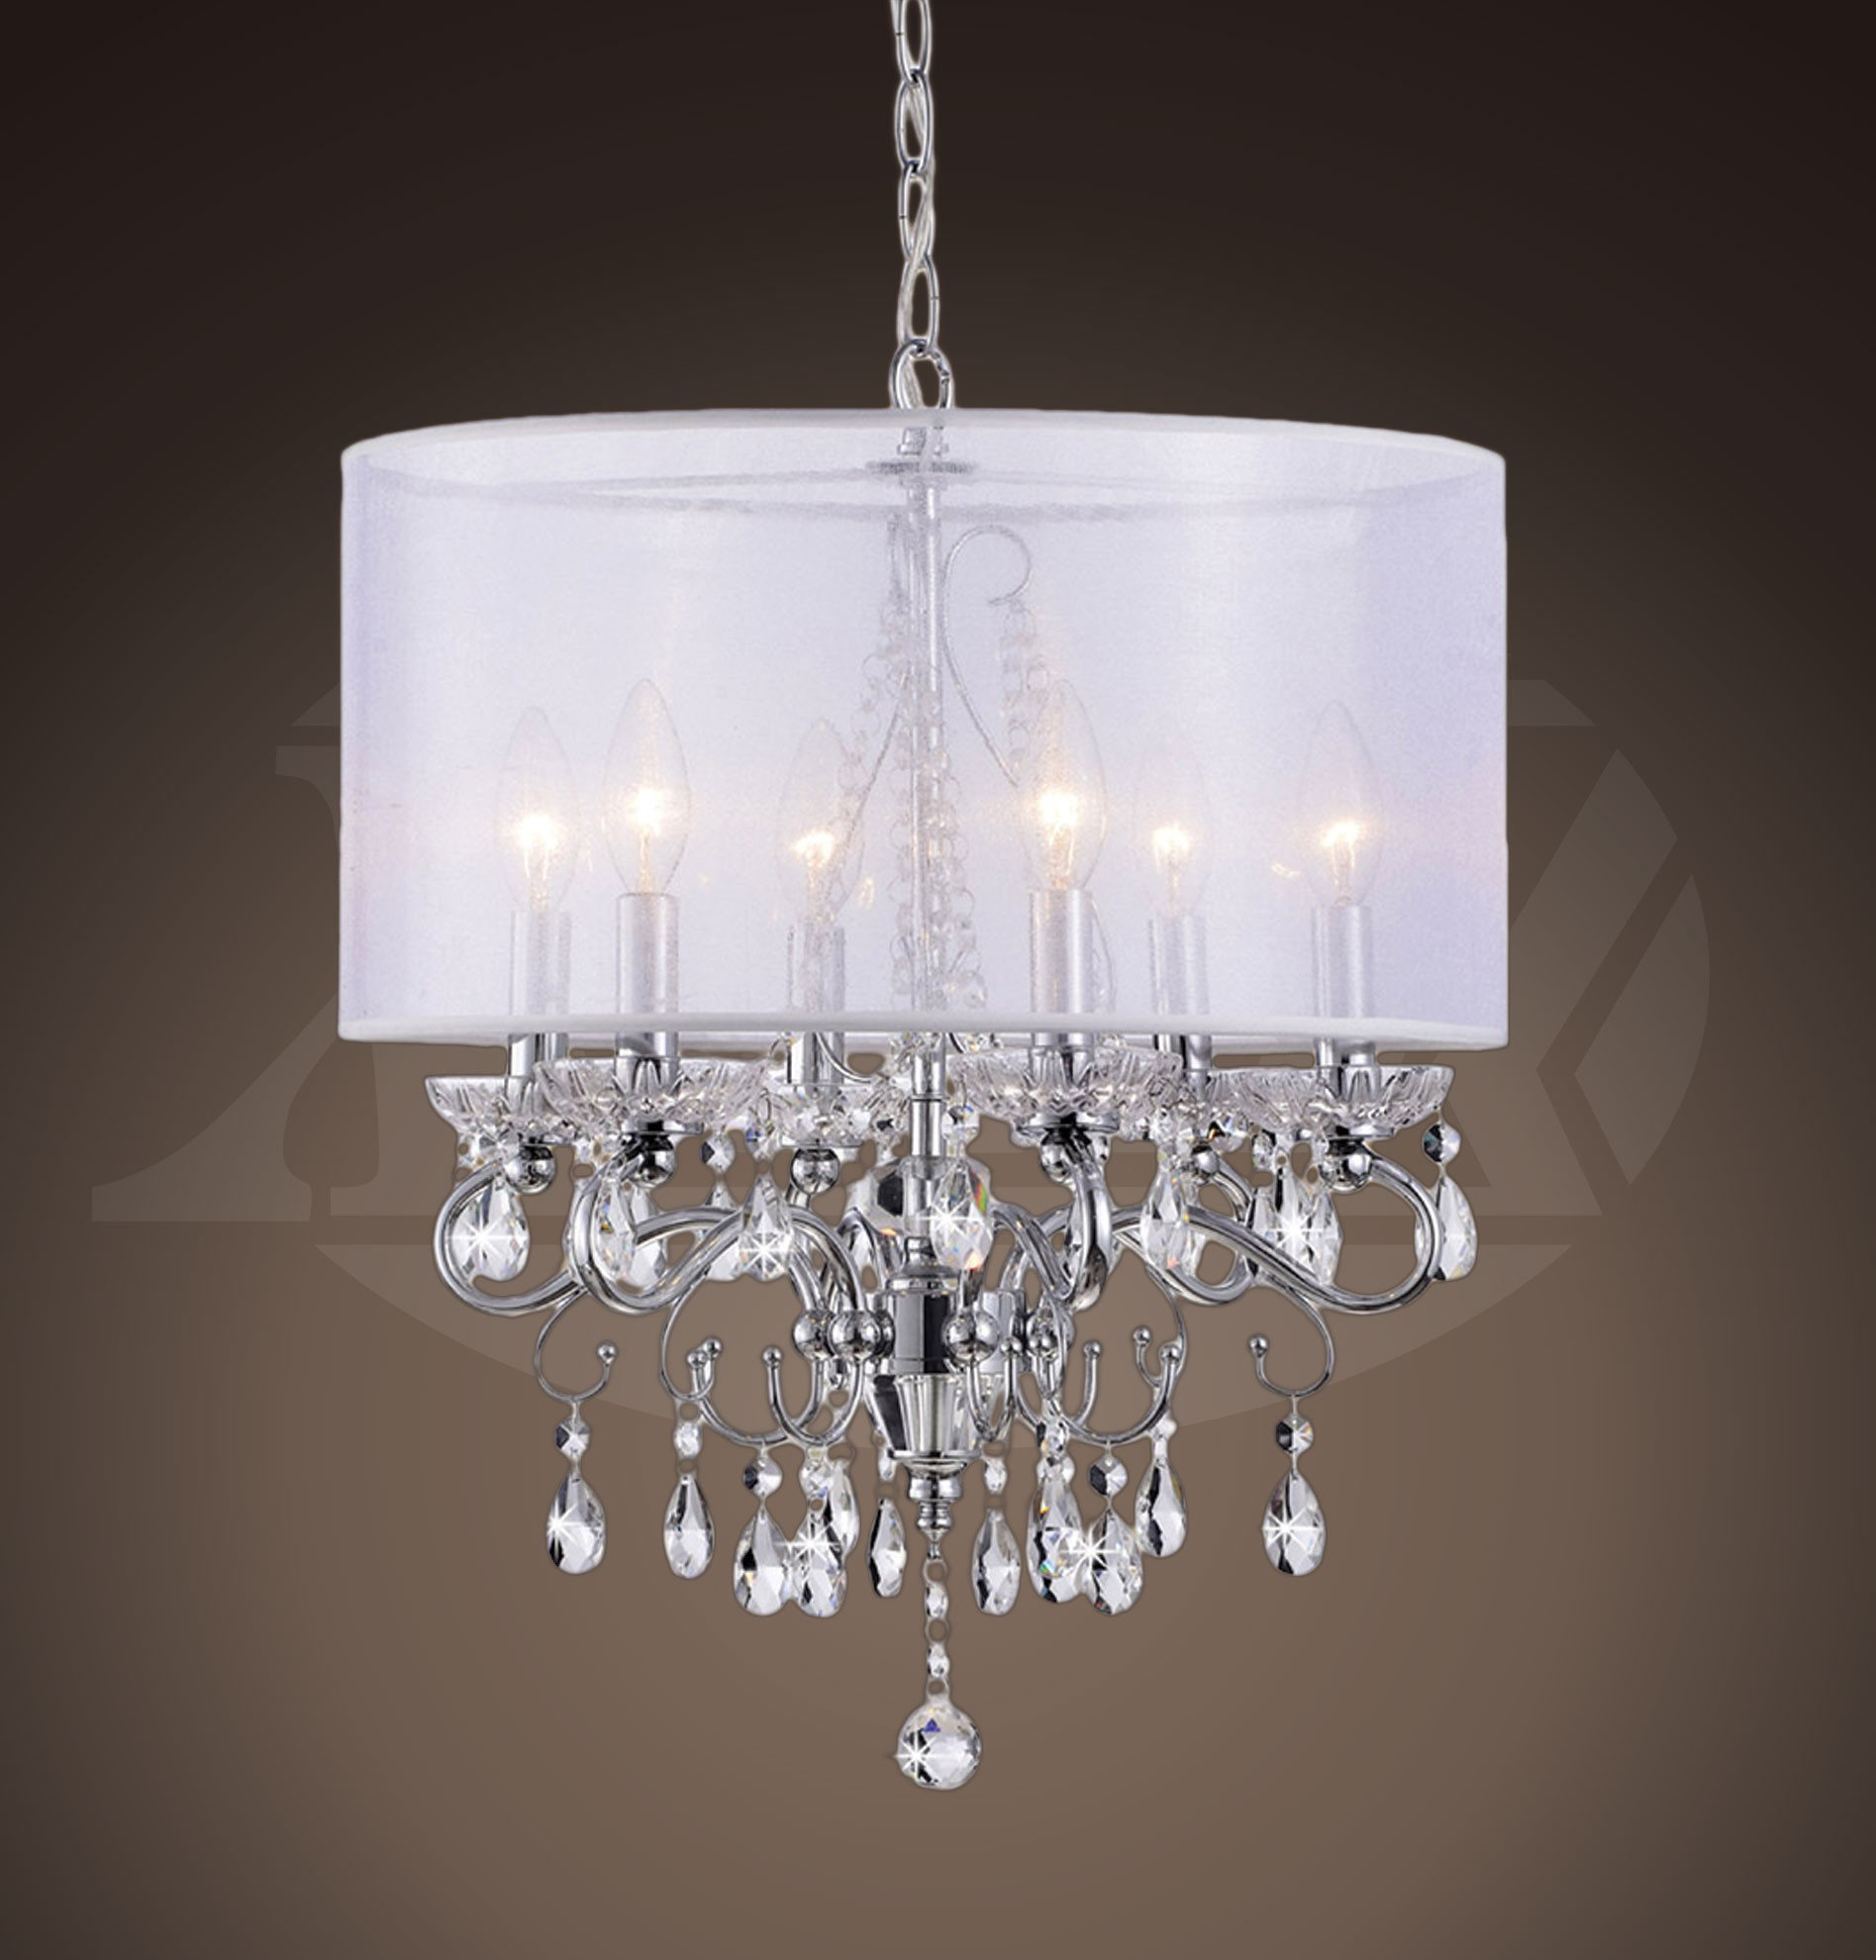 Sophia crystal chandelier with white fabric shade 17 w x 22 h sophia crystal chandelier with white fabric shade 17 w x 22 h arubaitofo Gallery